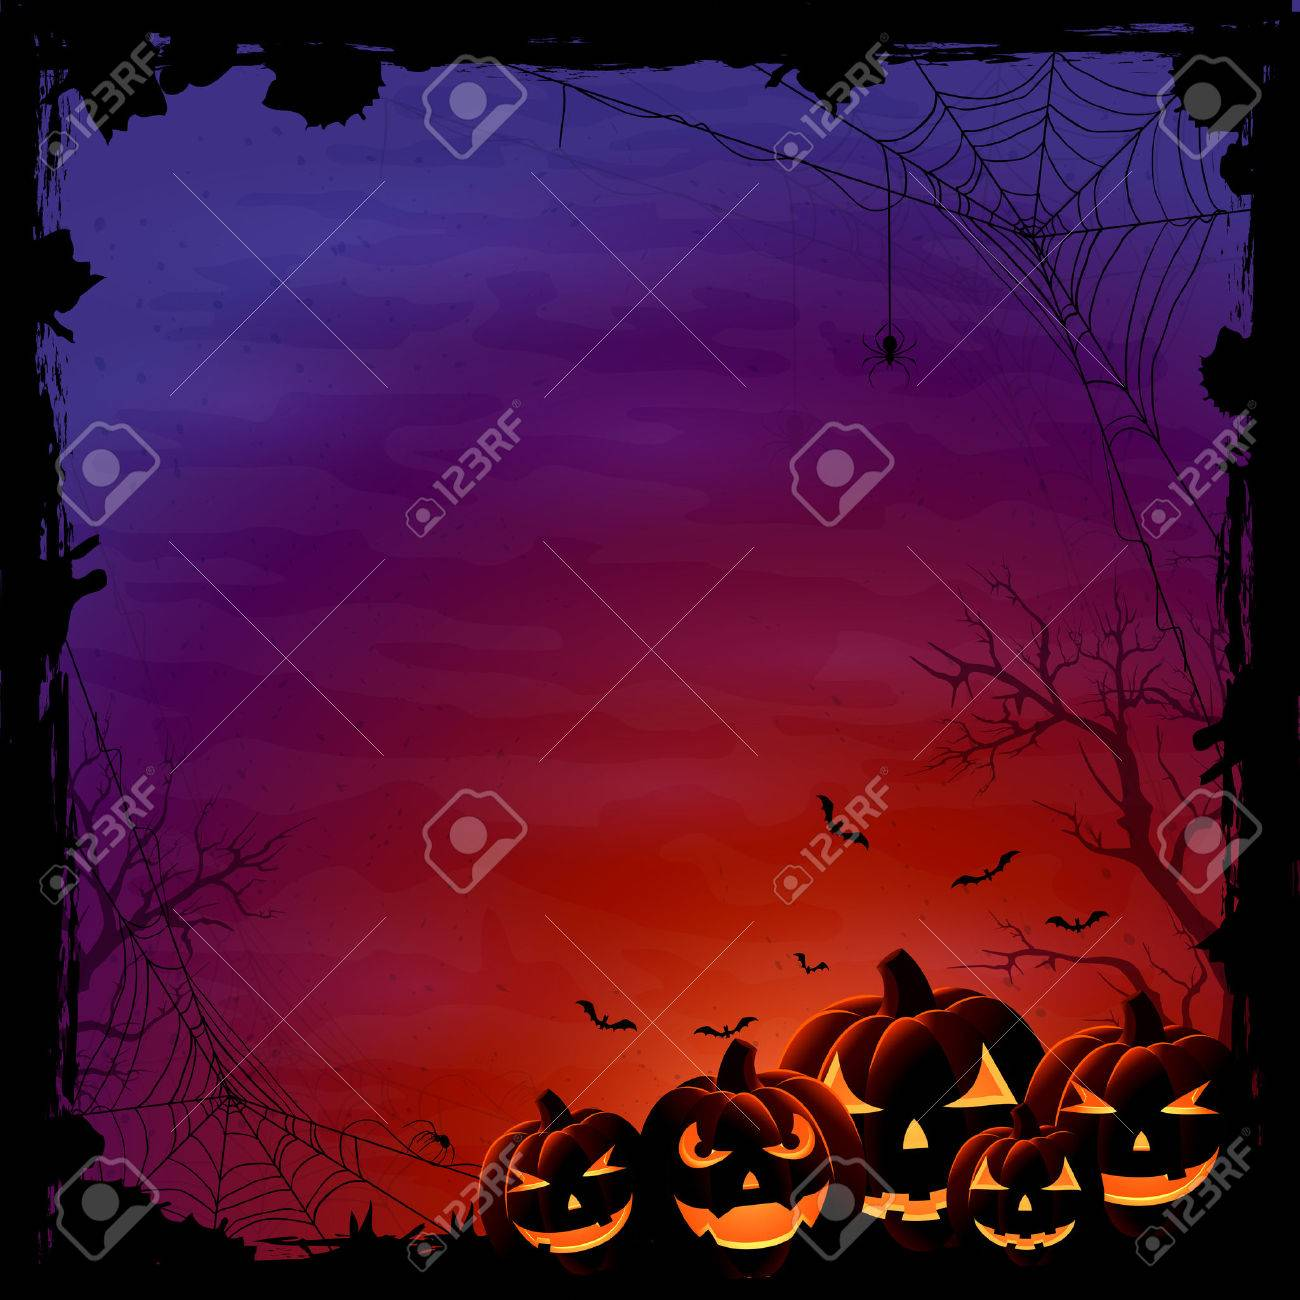 Halloween background with pumpkins and spiders, illustration. - 45296421